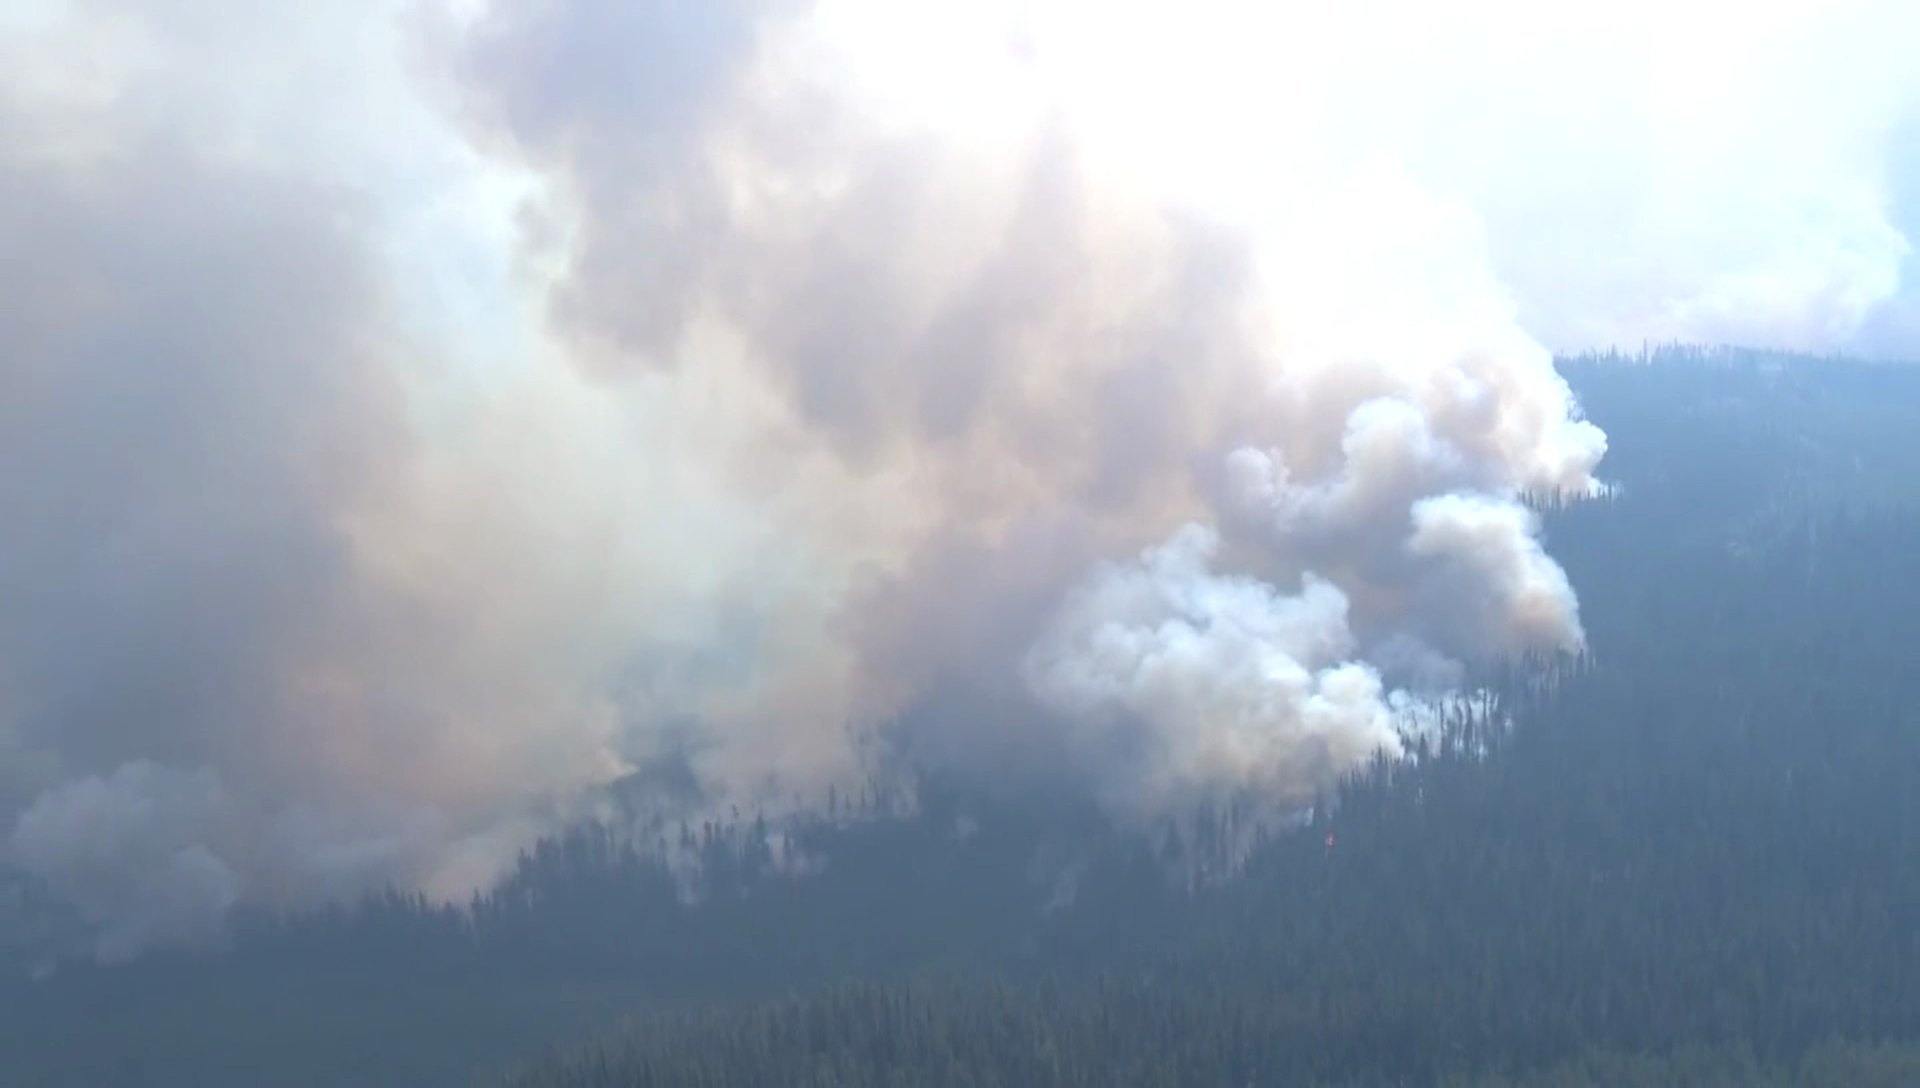 B.C. wildfires: Travel warning issued for Interior, aggressive growth forecast